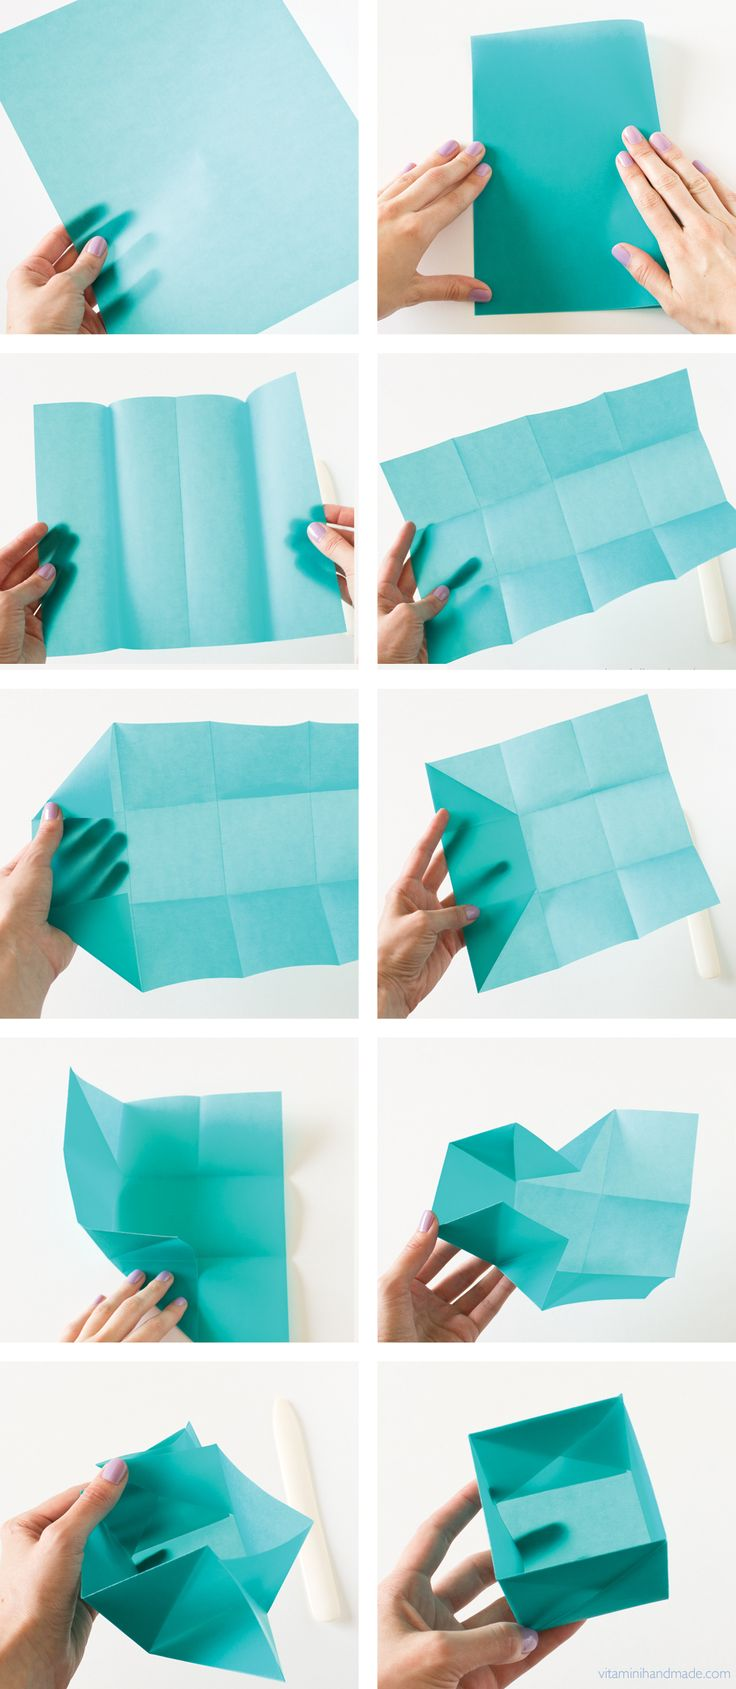 17 Best ideas about Paper Boxes on Pinterest | Diy box, Paper box ...